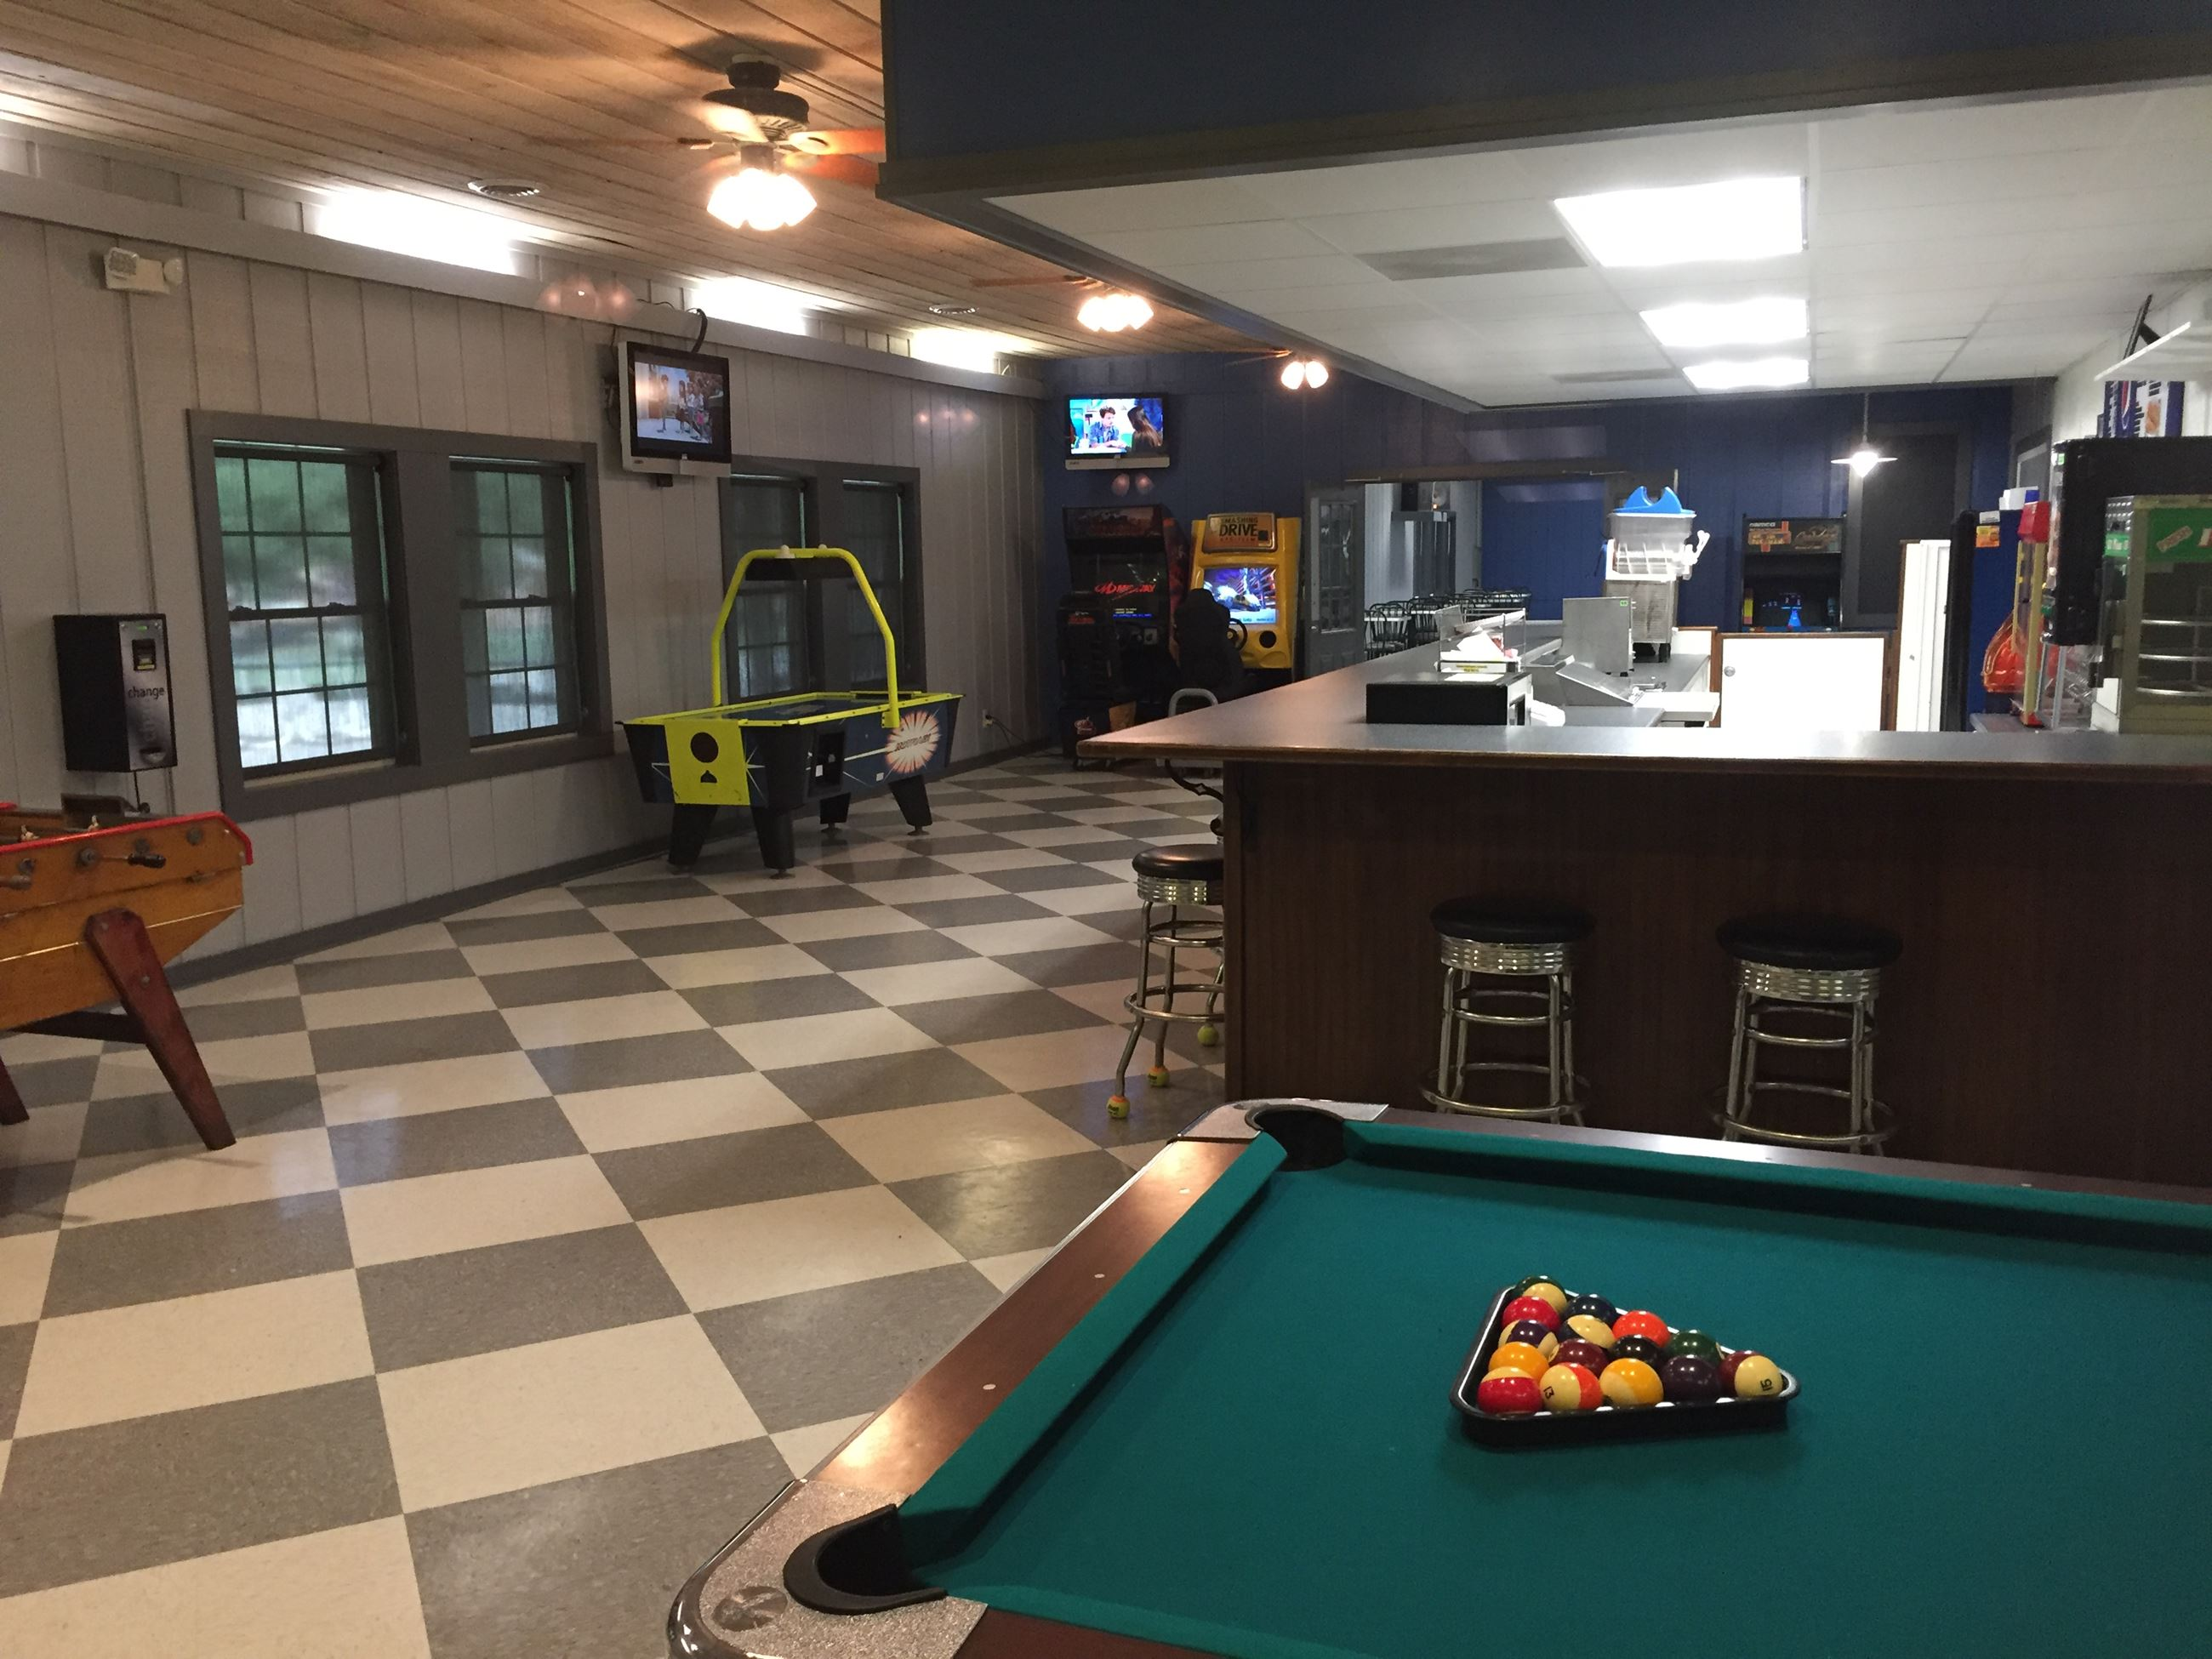 Concession stand w/ pool table